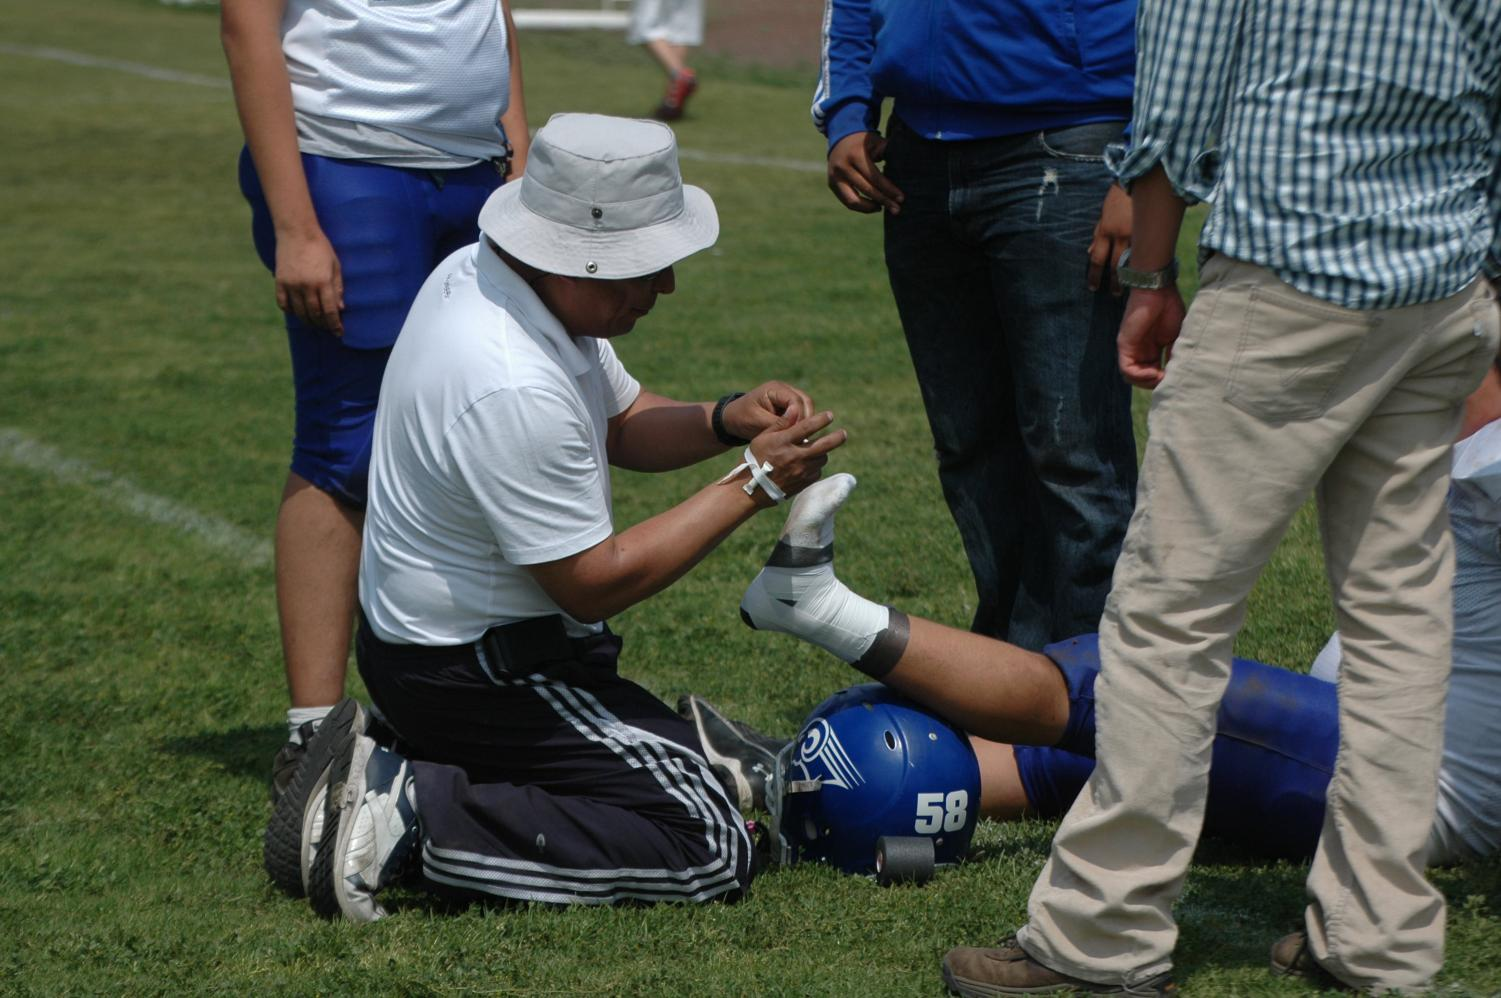 Approximately 2 million injuries annually come from high school sports.